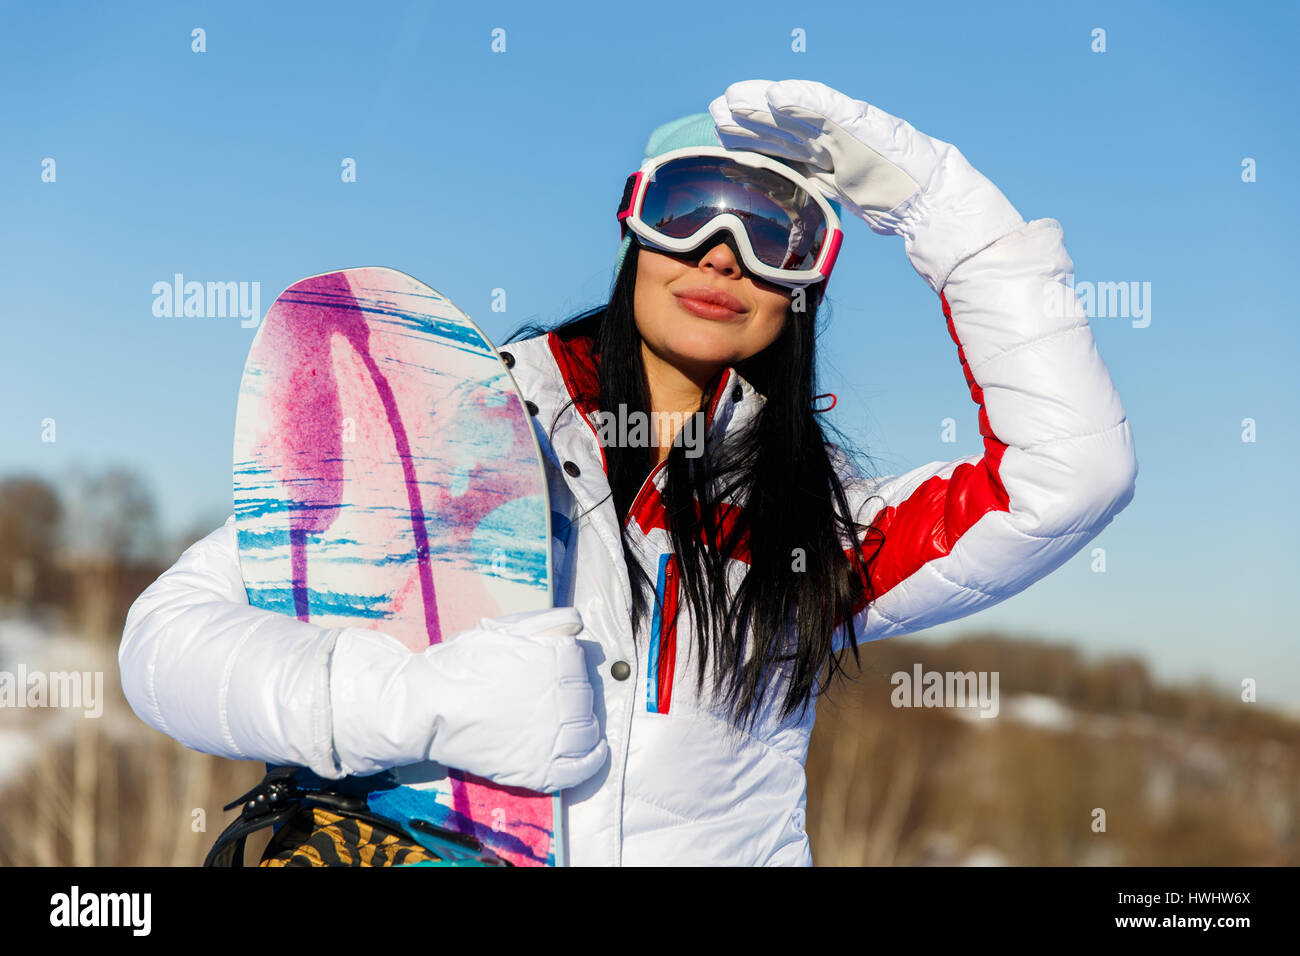 Woman with snowboard and glasses - Stock Image